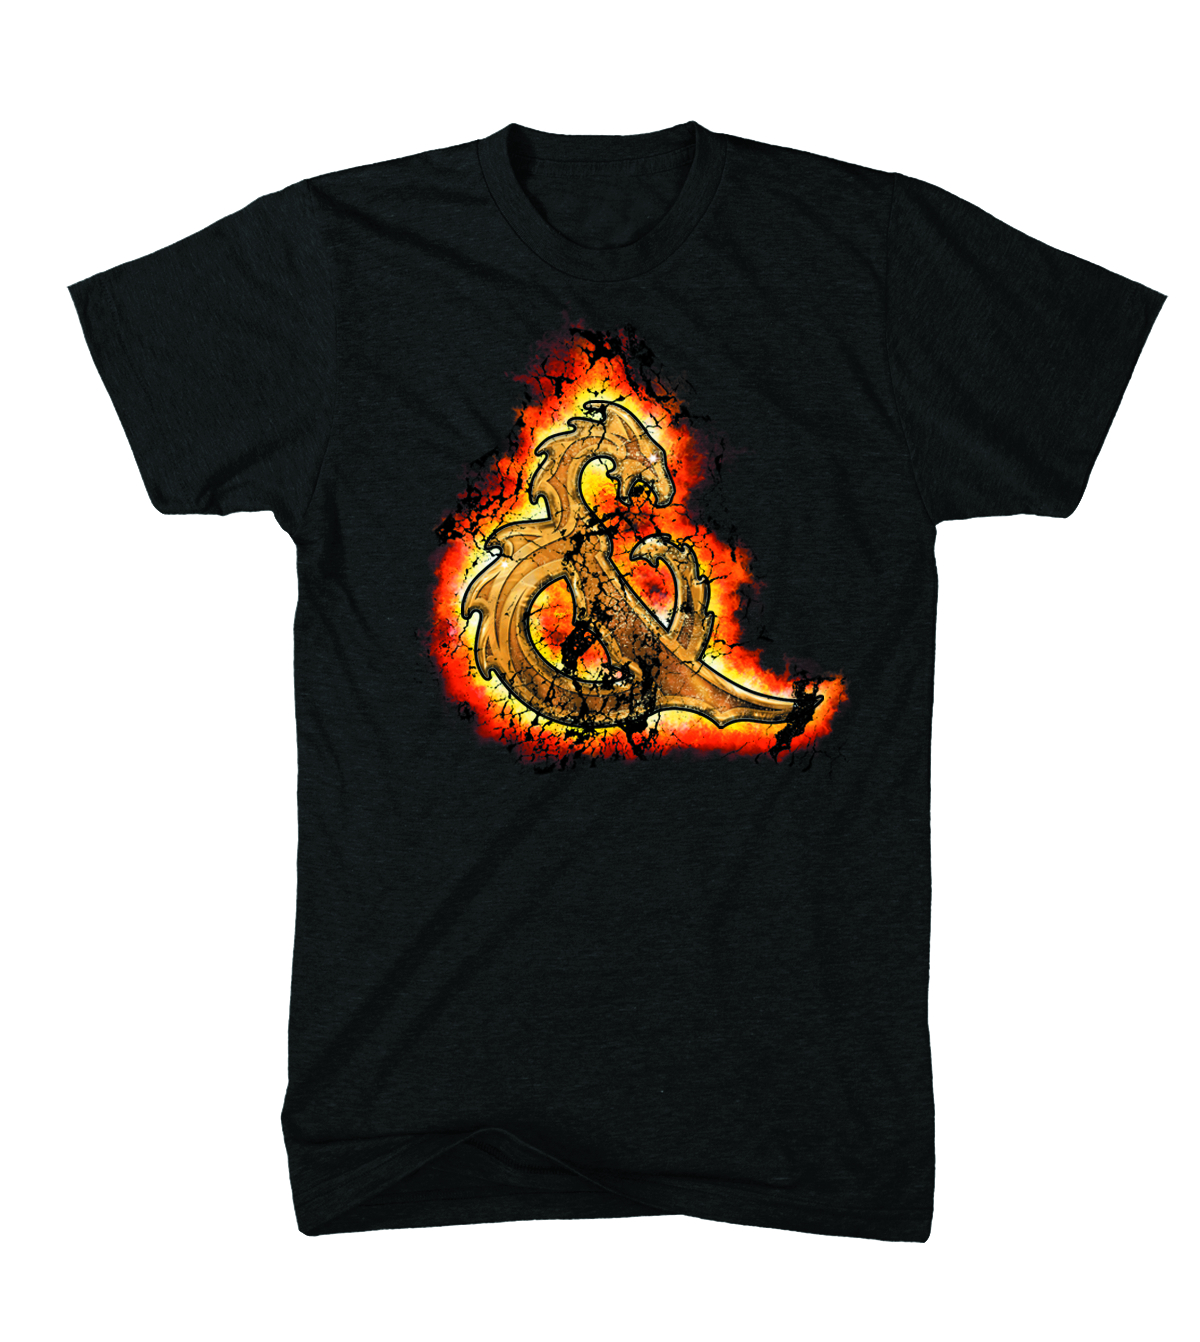 D&D AMPERSAND FIRE T/S BLK XL